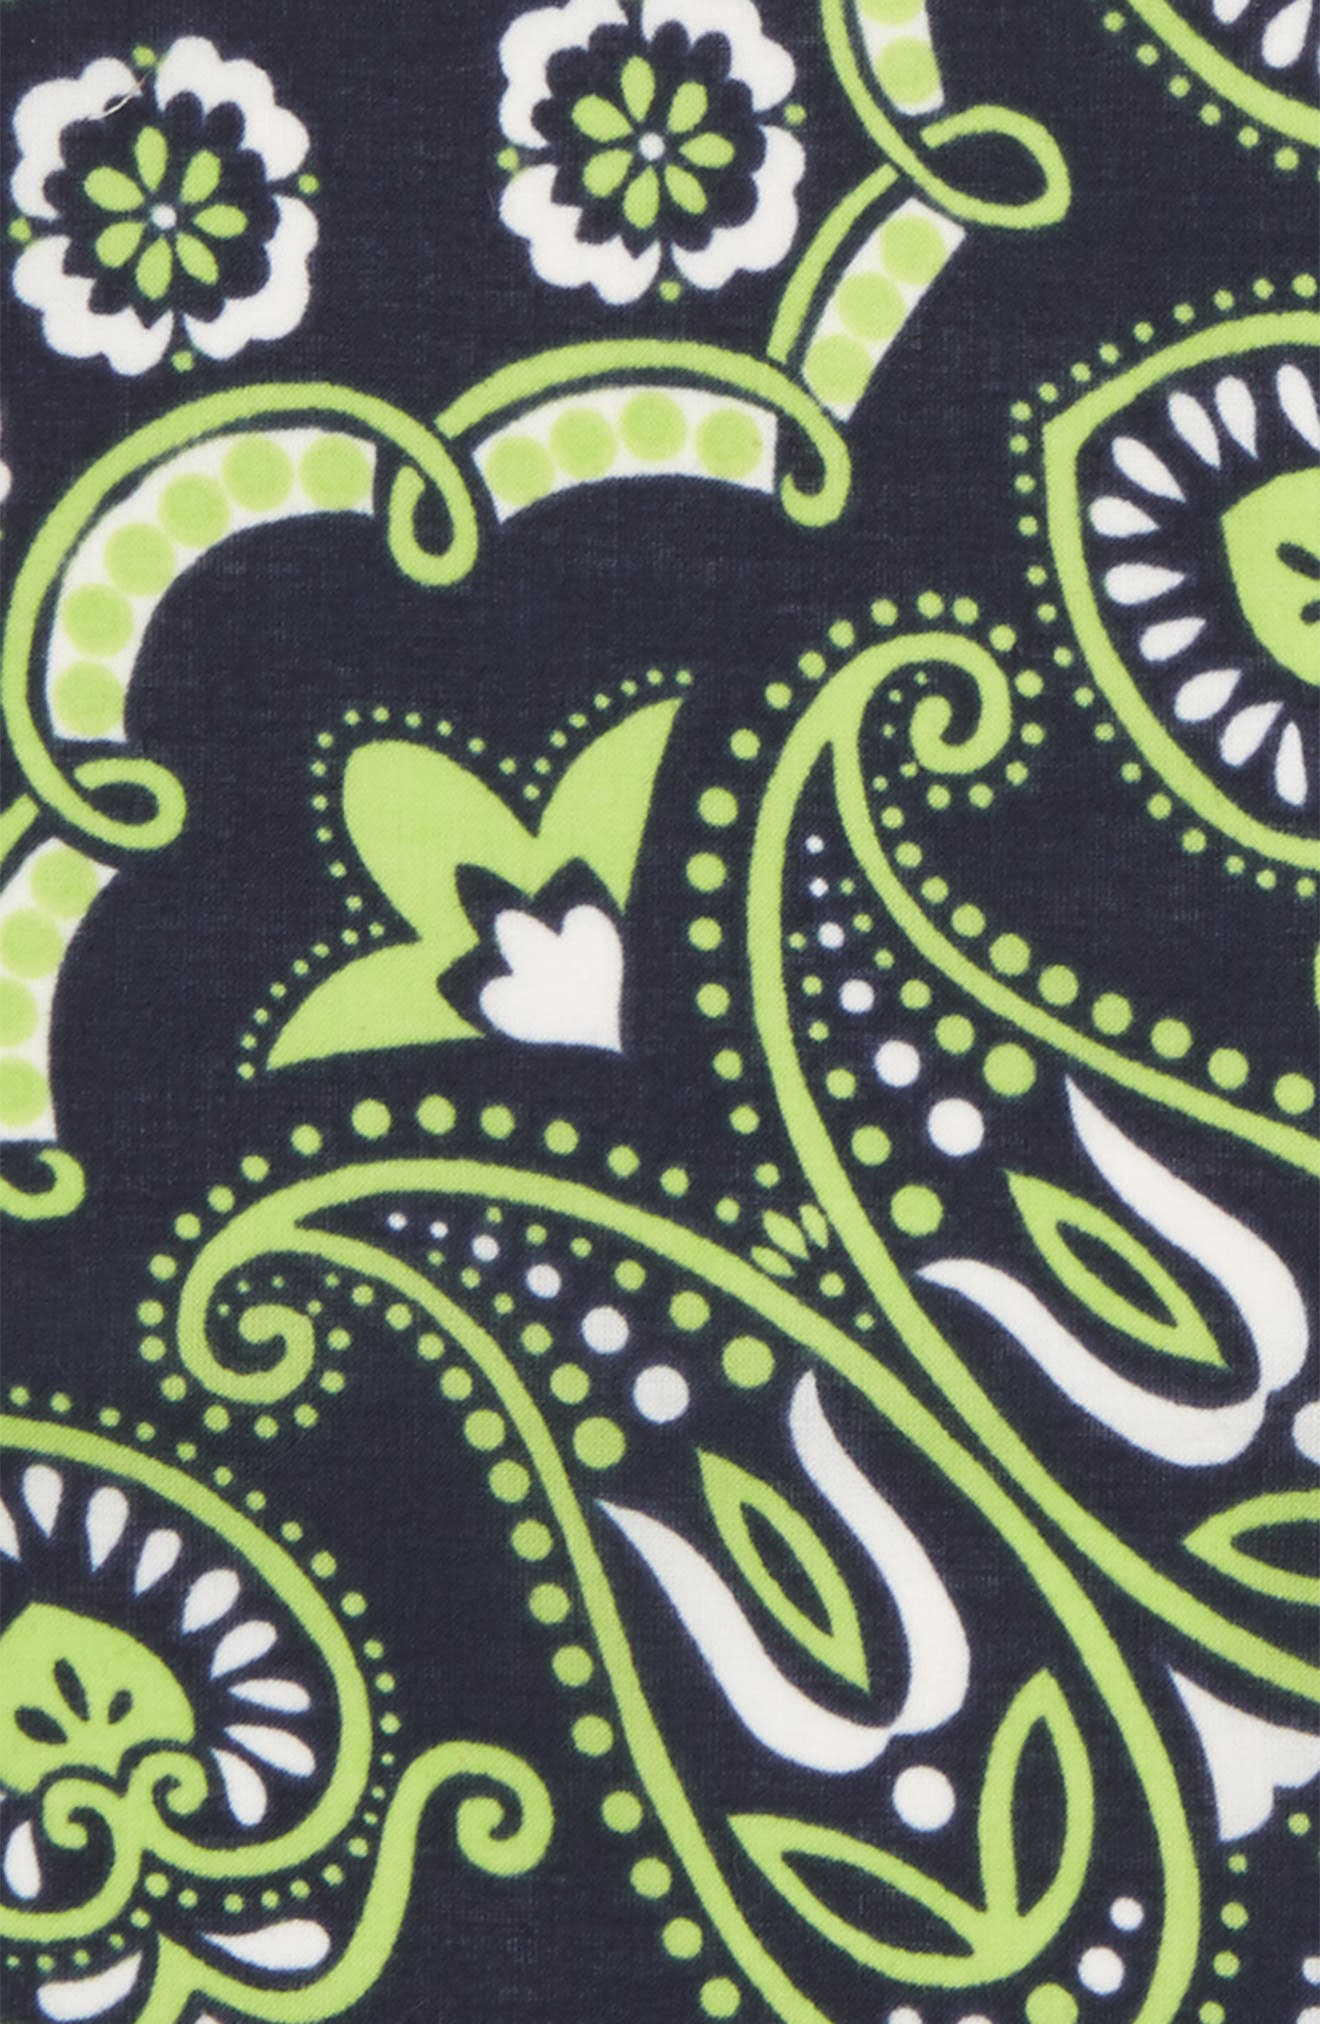 Neon Paisley Cotton Pocket Square,                             Alternate thumbnail 3, color,                             Blue/ Lime Green